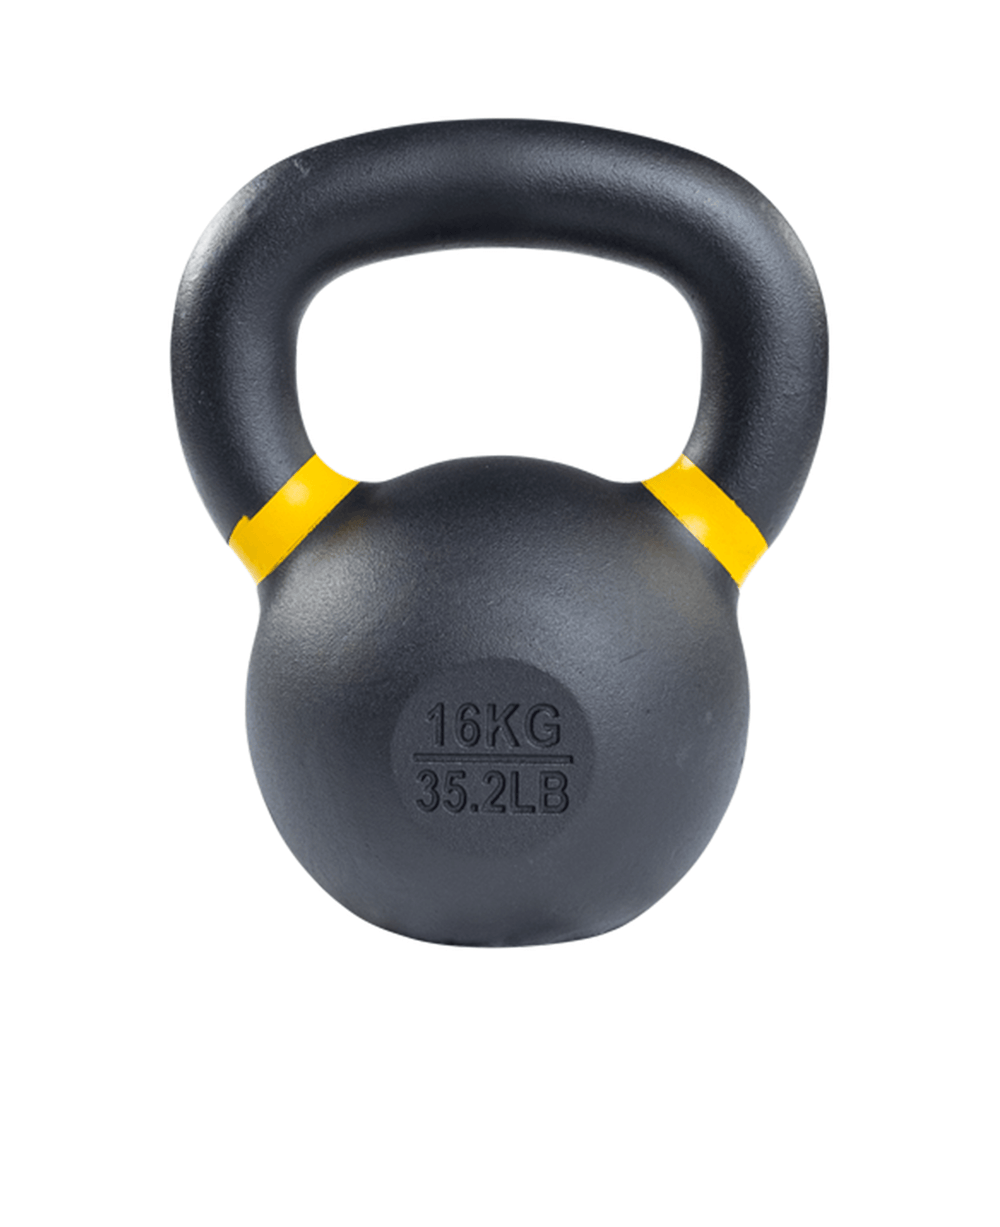 Body-Solid Premium Training Kettlebell 16 kg Alt1